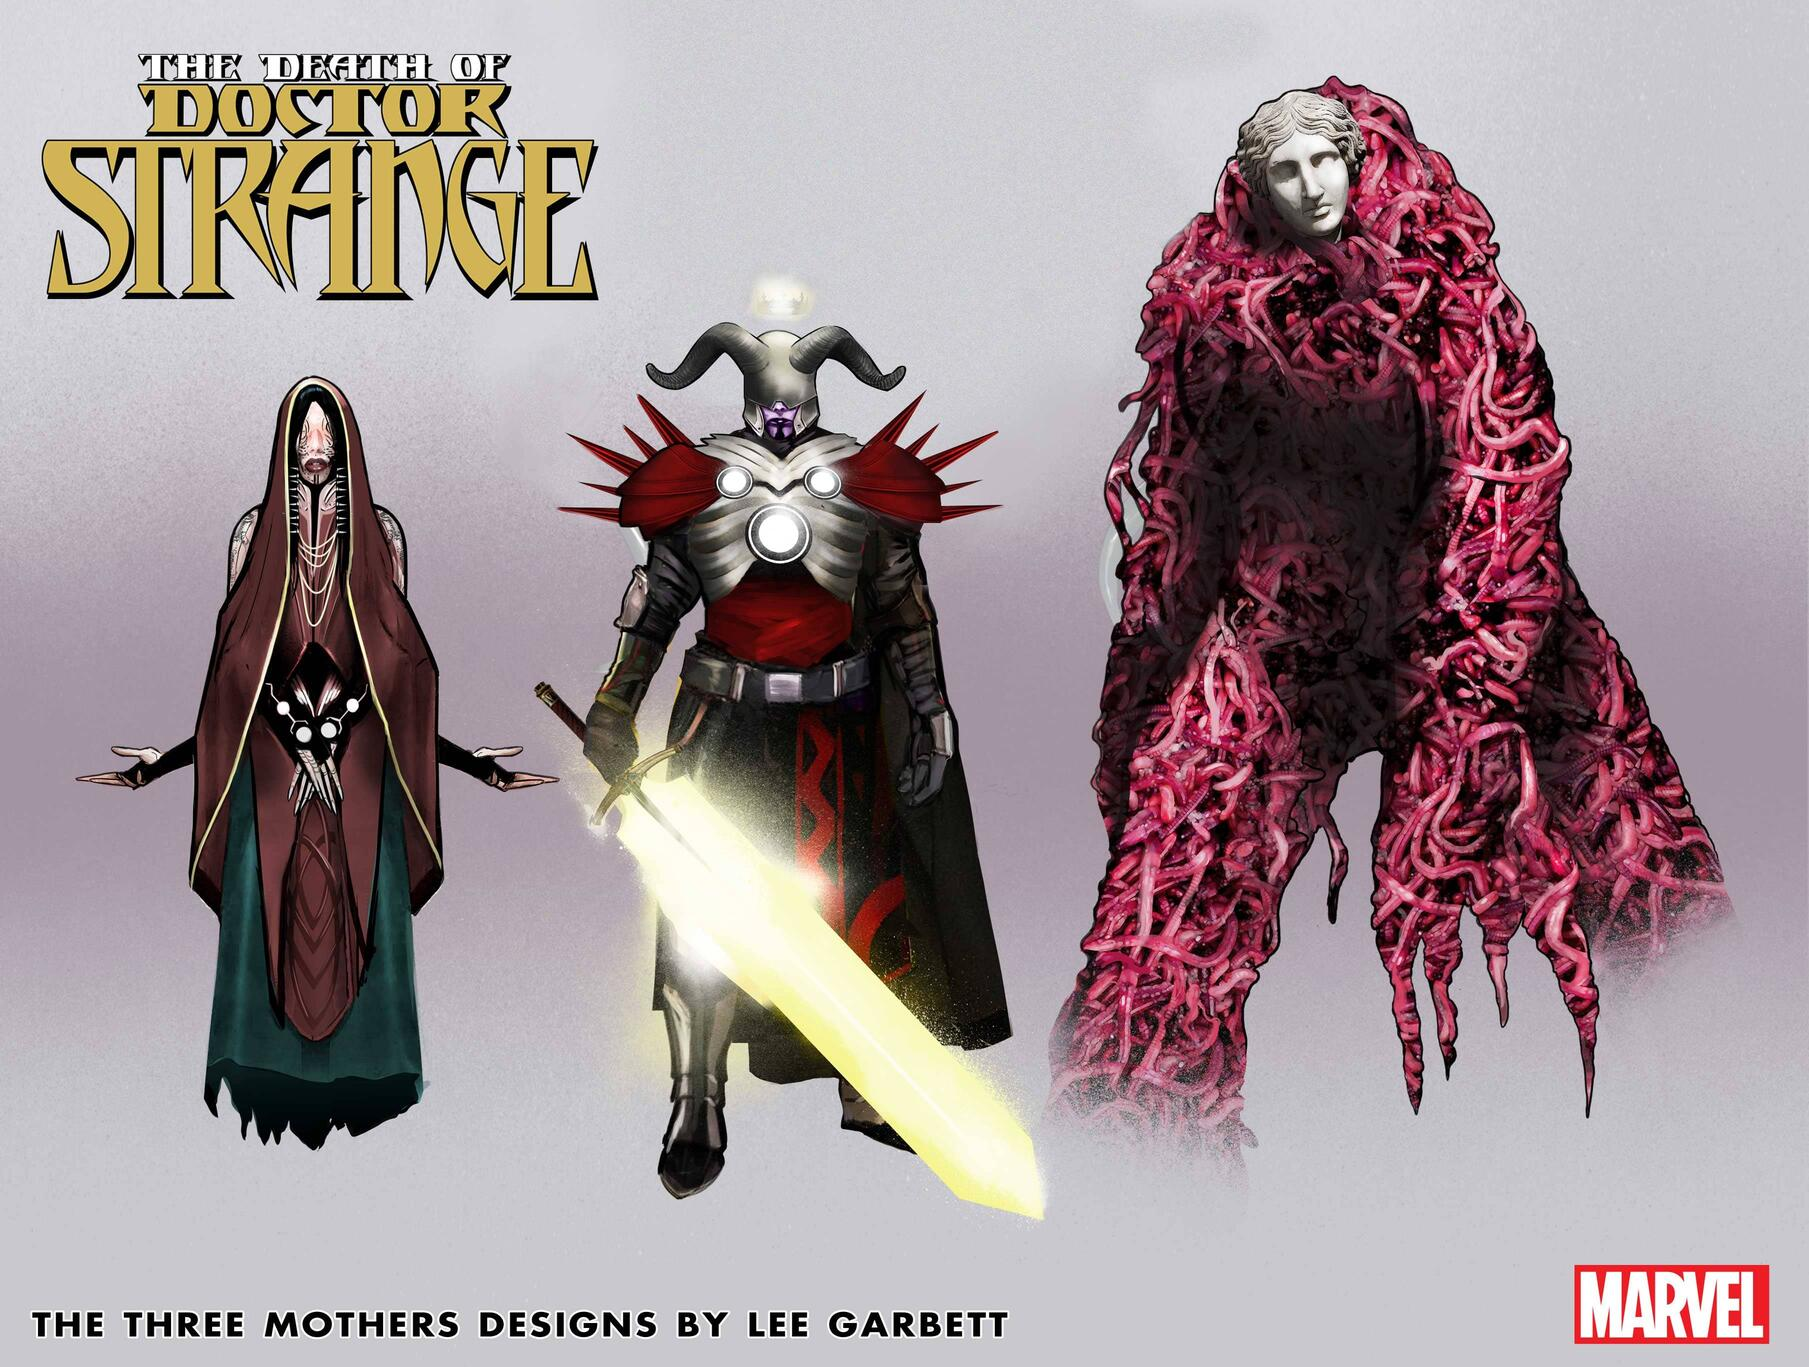 The Three Mothers character designs